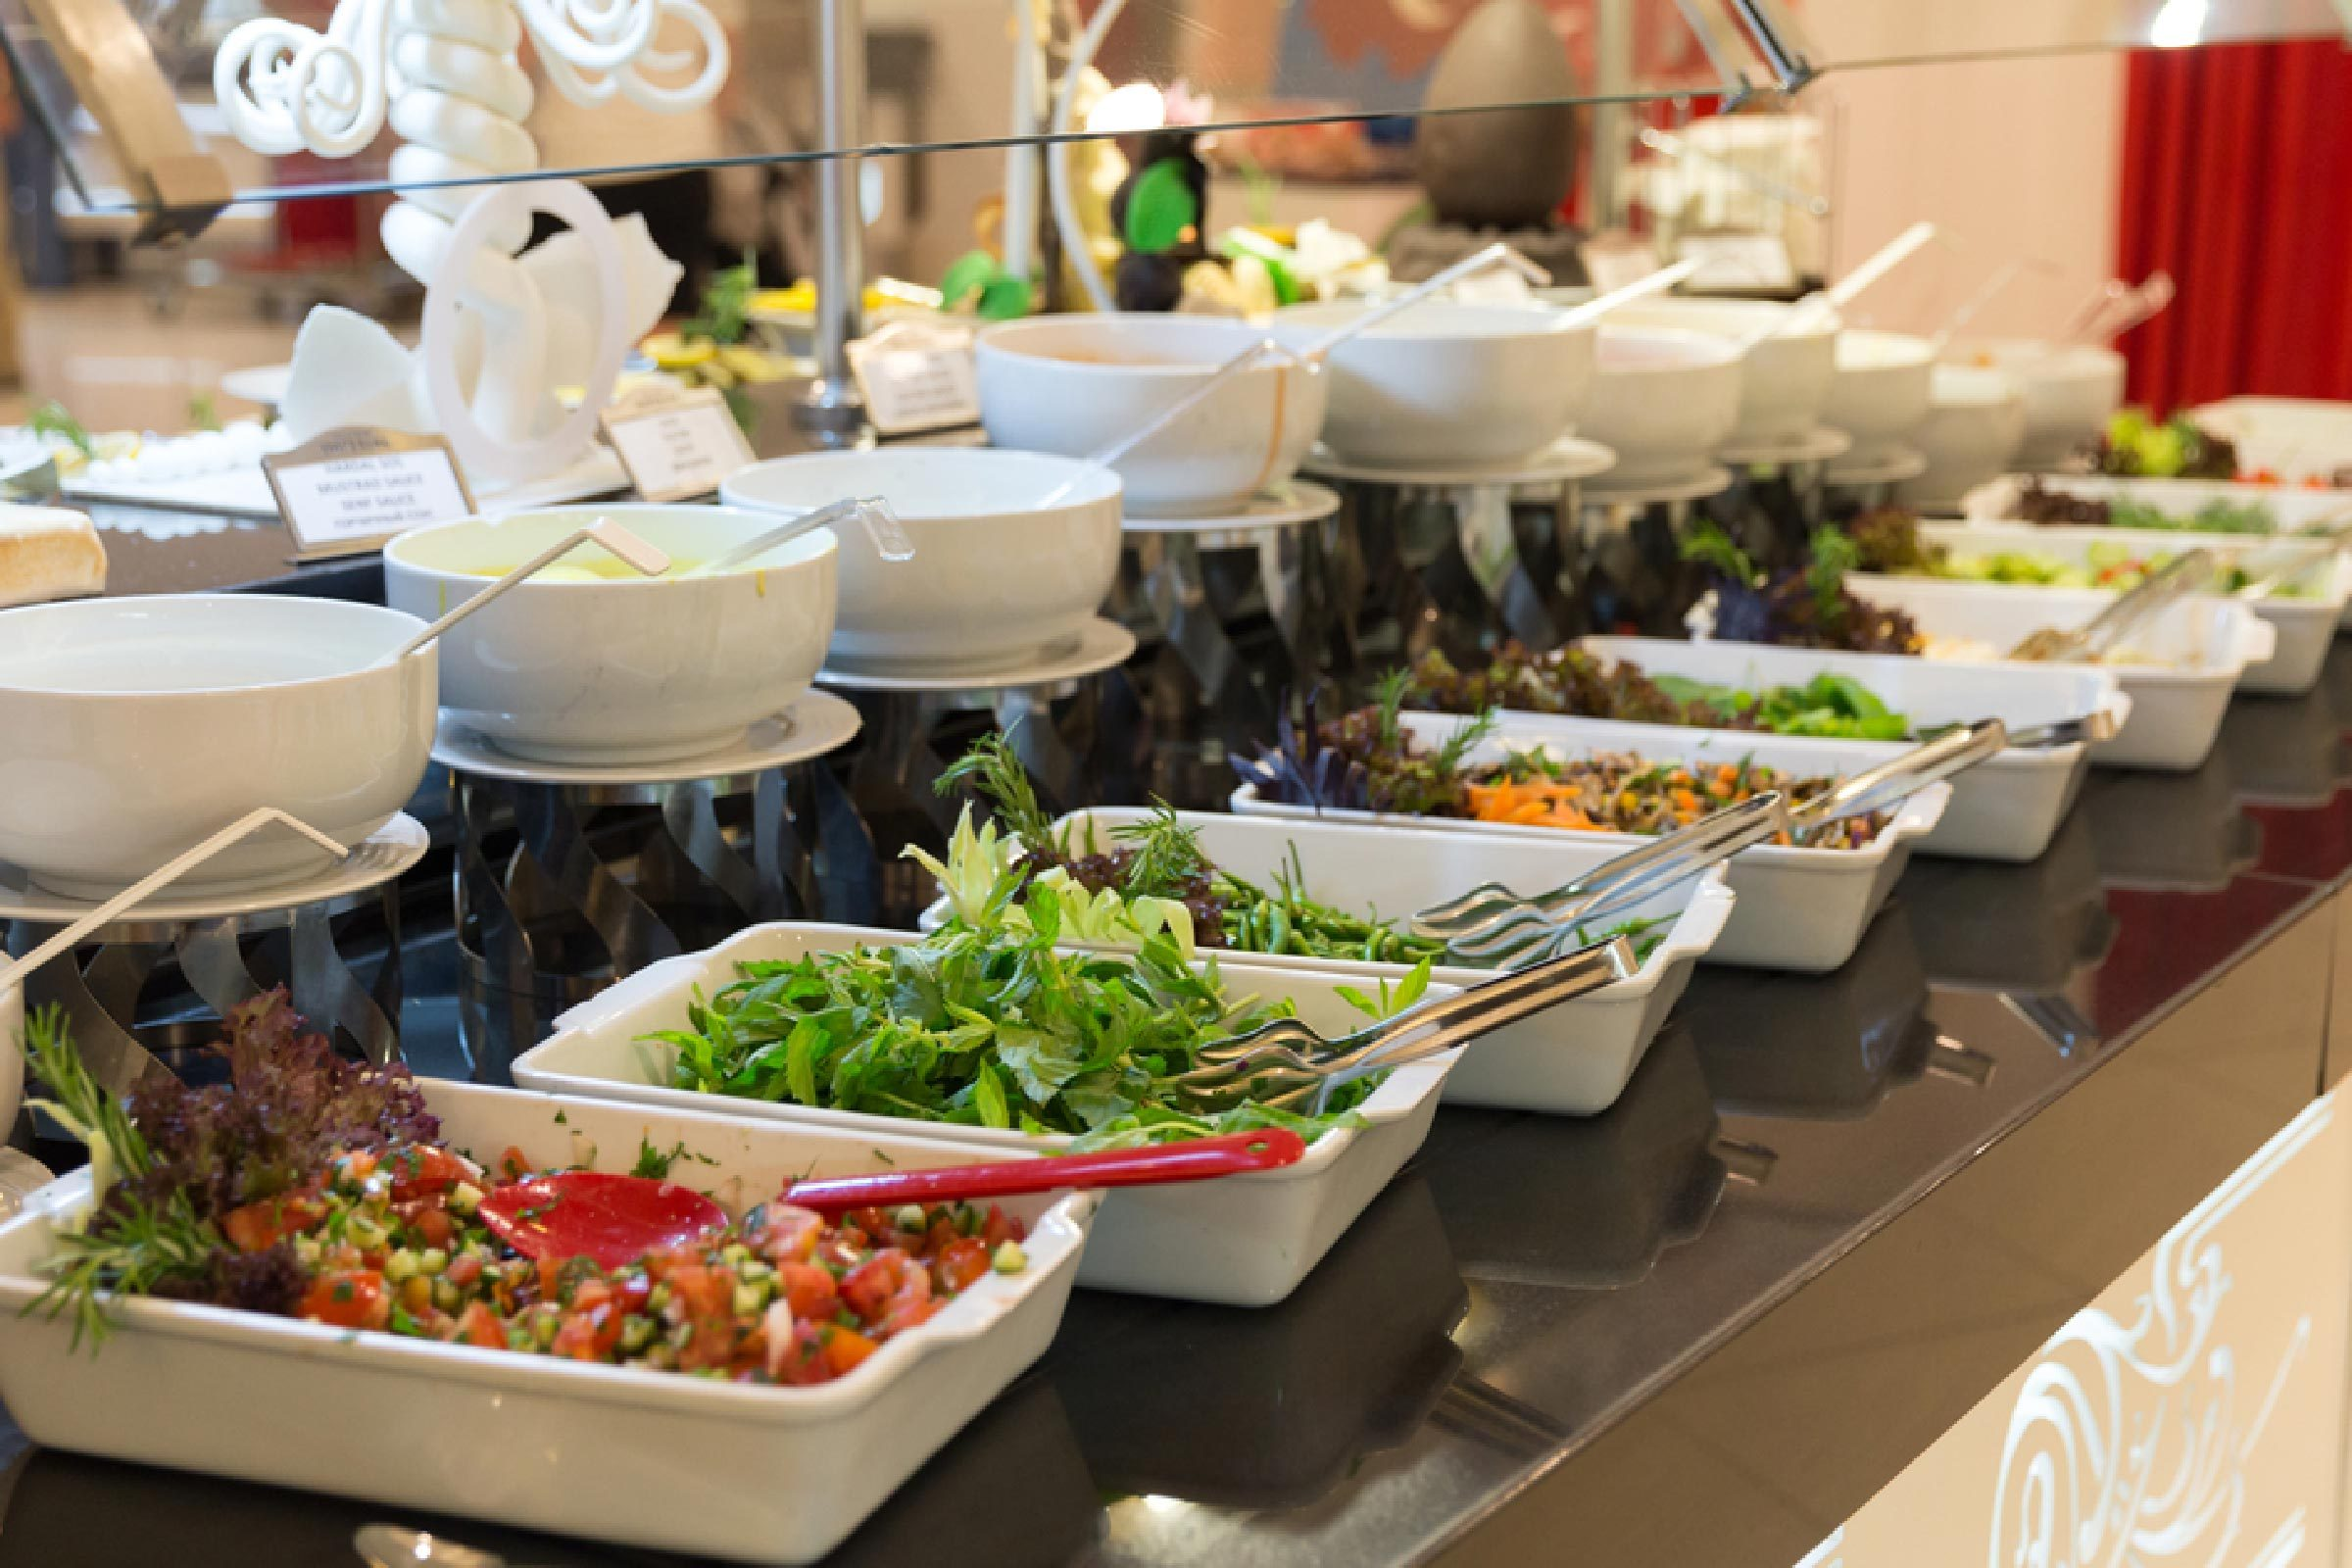 Detail of a beautiful salad buffet with a rich choice, healthy food